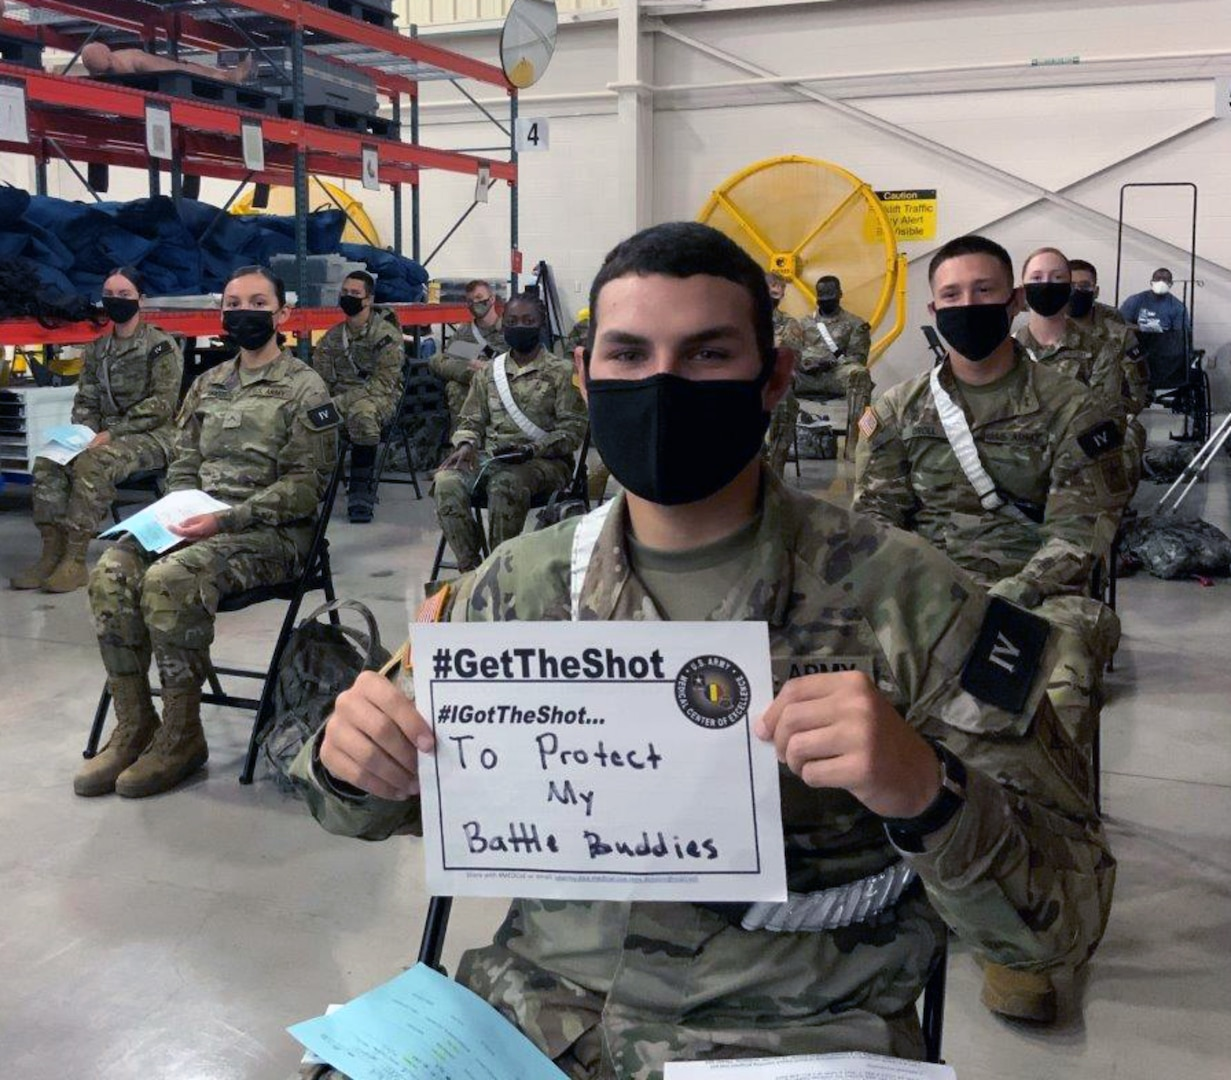 Pvt. Michael Giuffrida, a 68K medical laboratory specialist in training at the U.S. Army Medical Center of Excellence, or MEDCoE, received the first dose of the Pfizer BioNTech COVID-19 vaccine at the Brooke Army Medical Center's Joint Base San Antonio-Fort Sam Houston Vaccine site April 15.